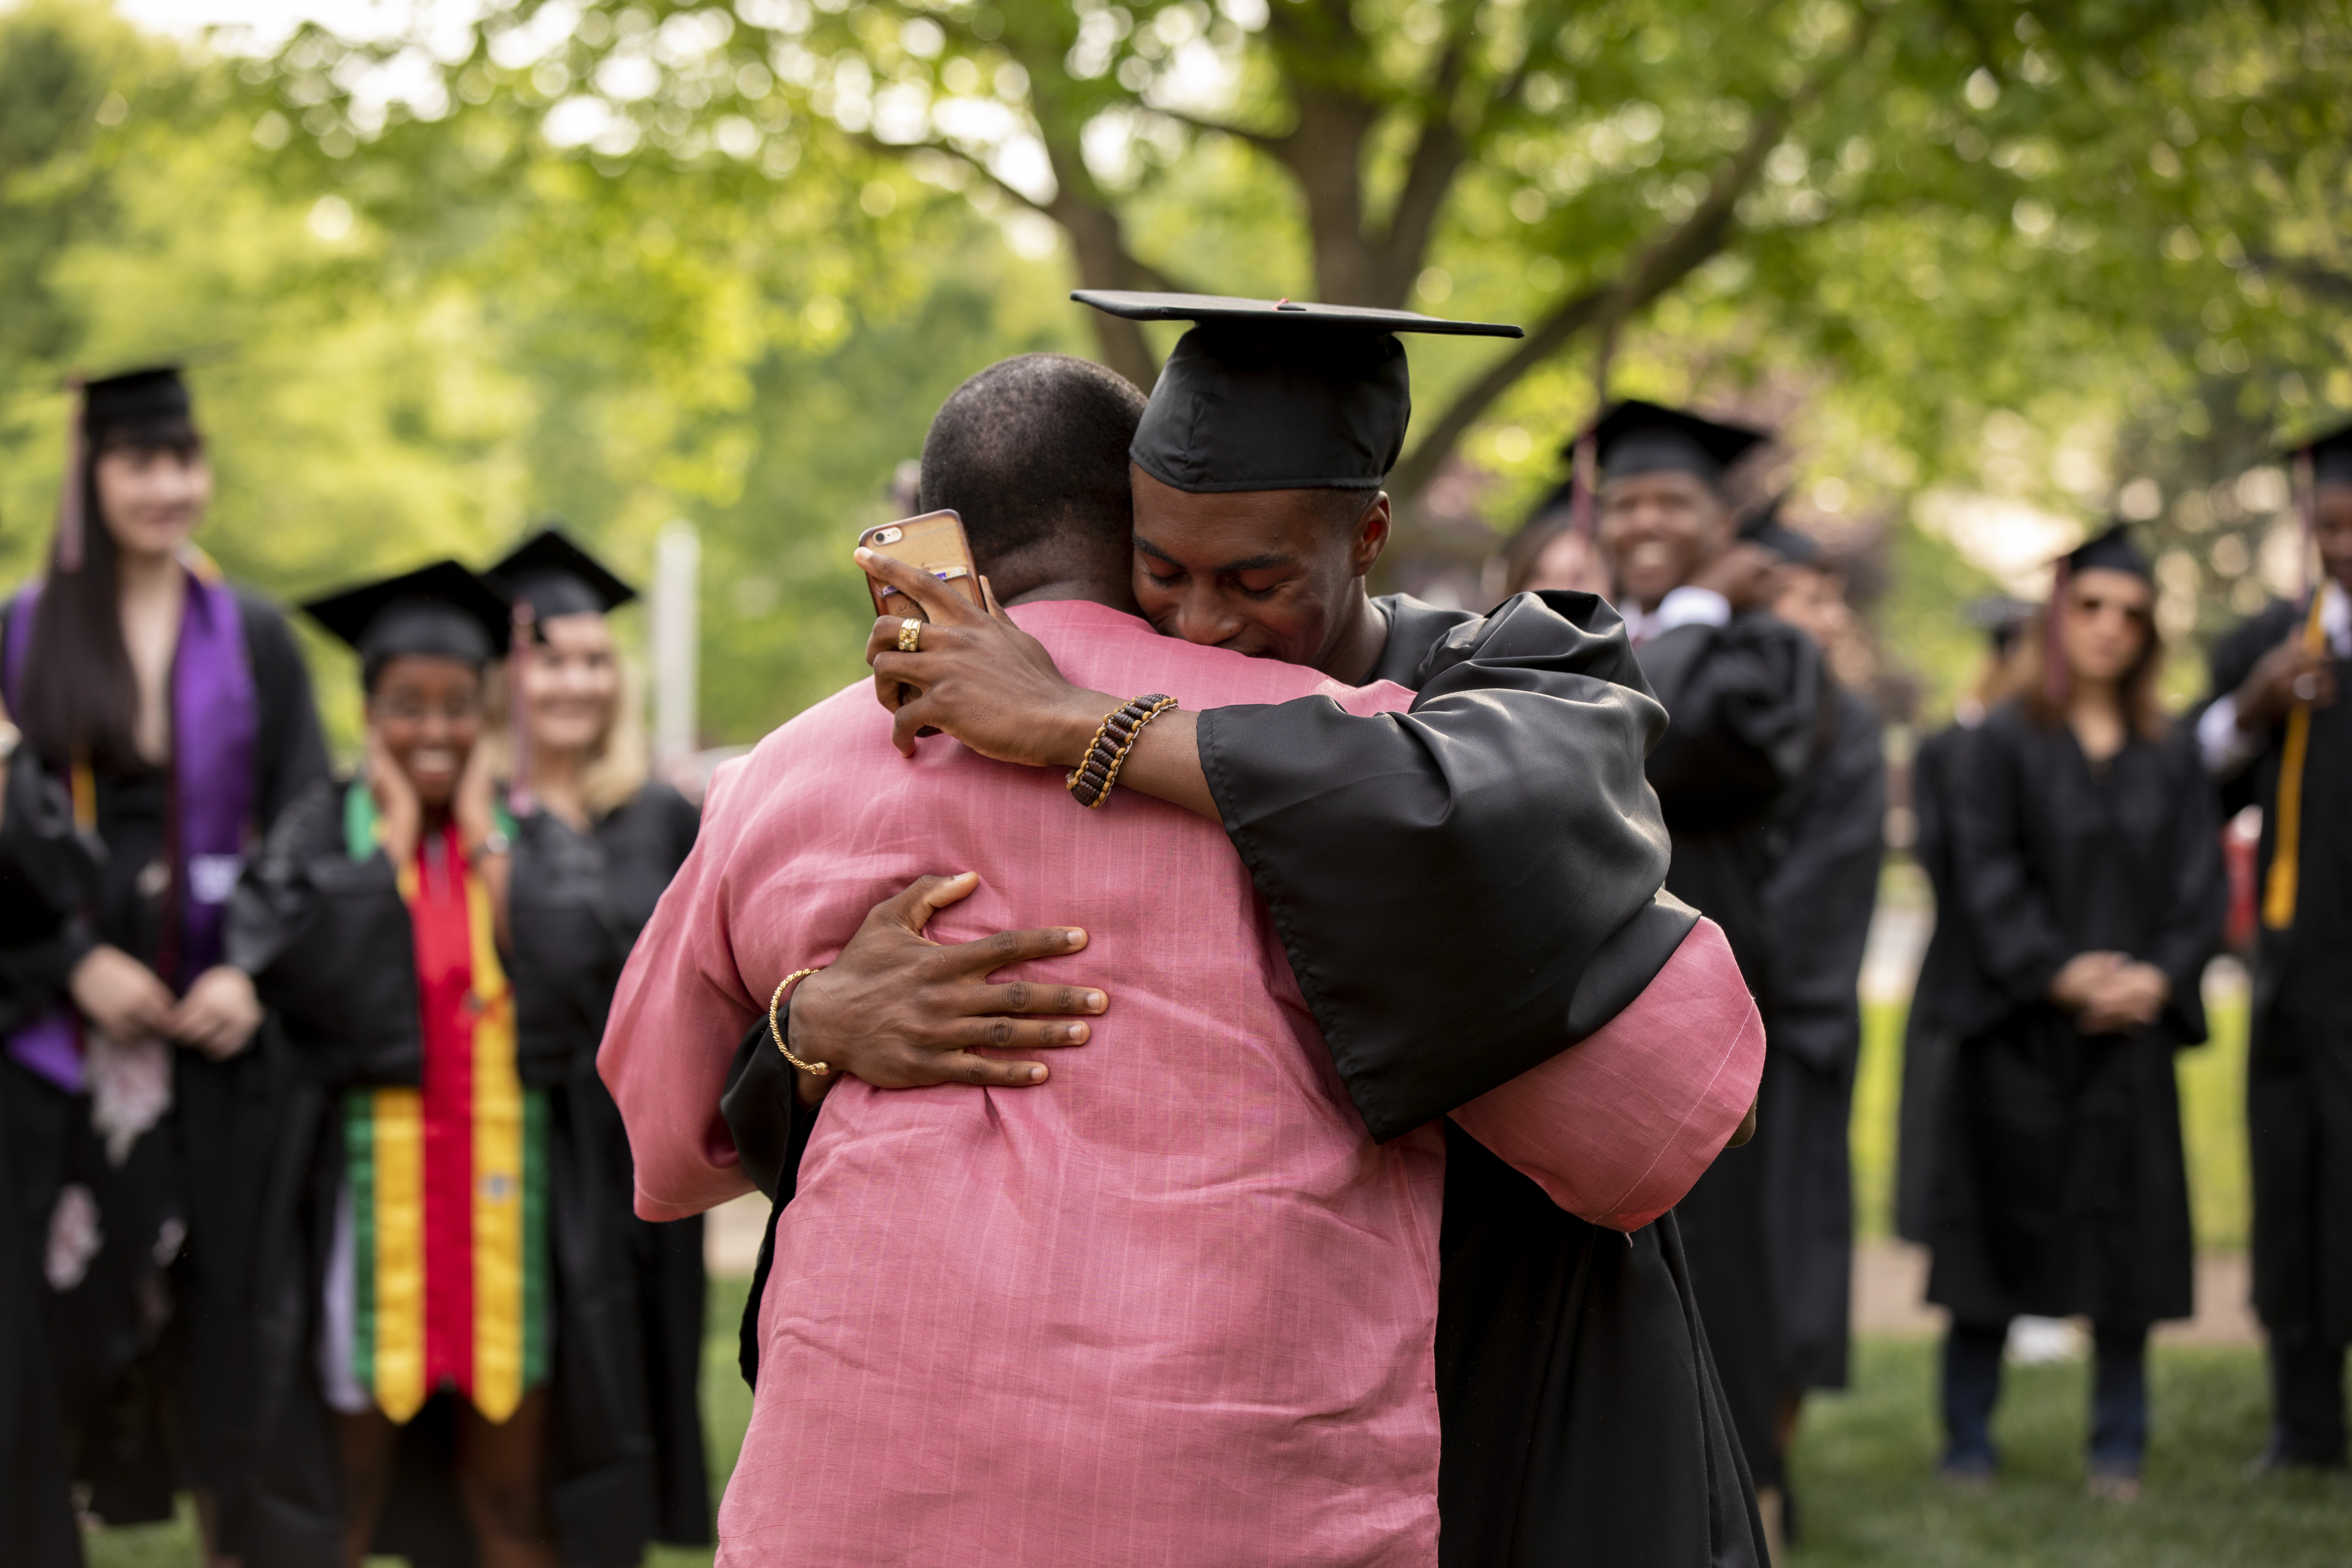 A student hugs a friend after Commencement.